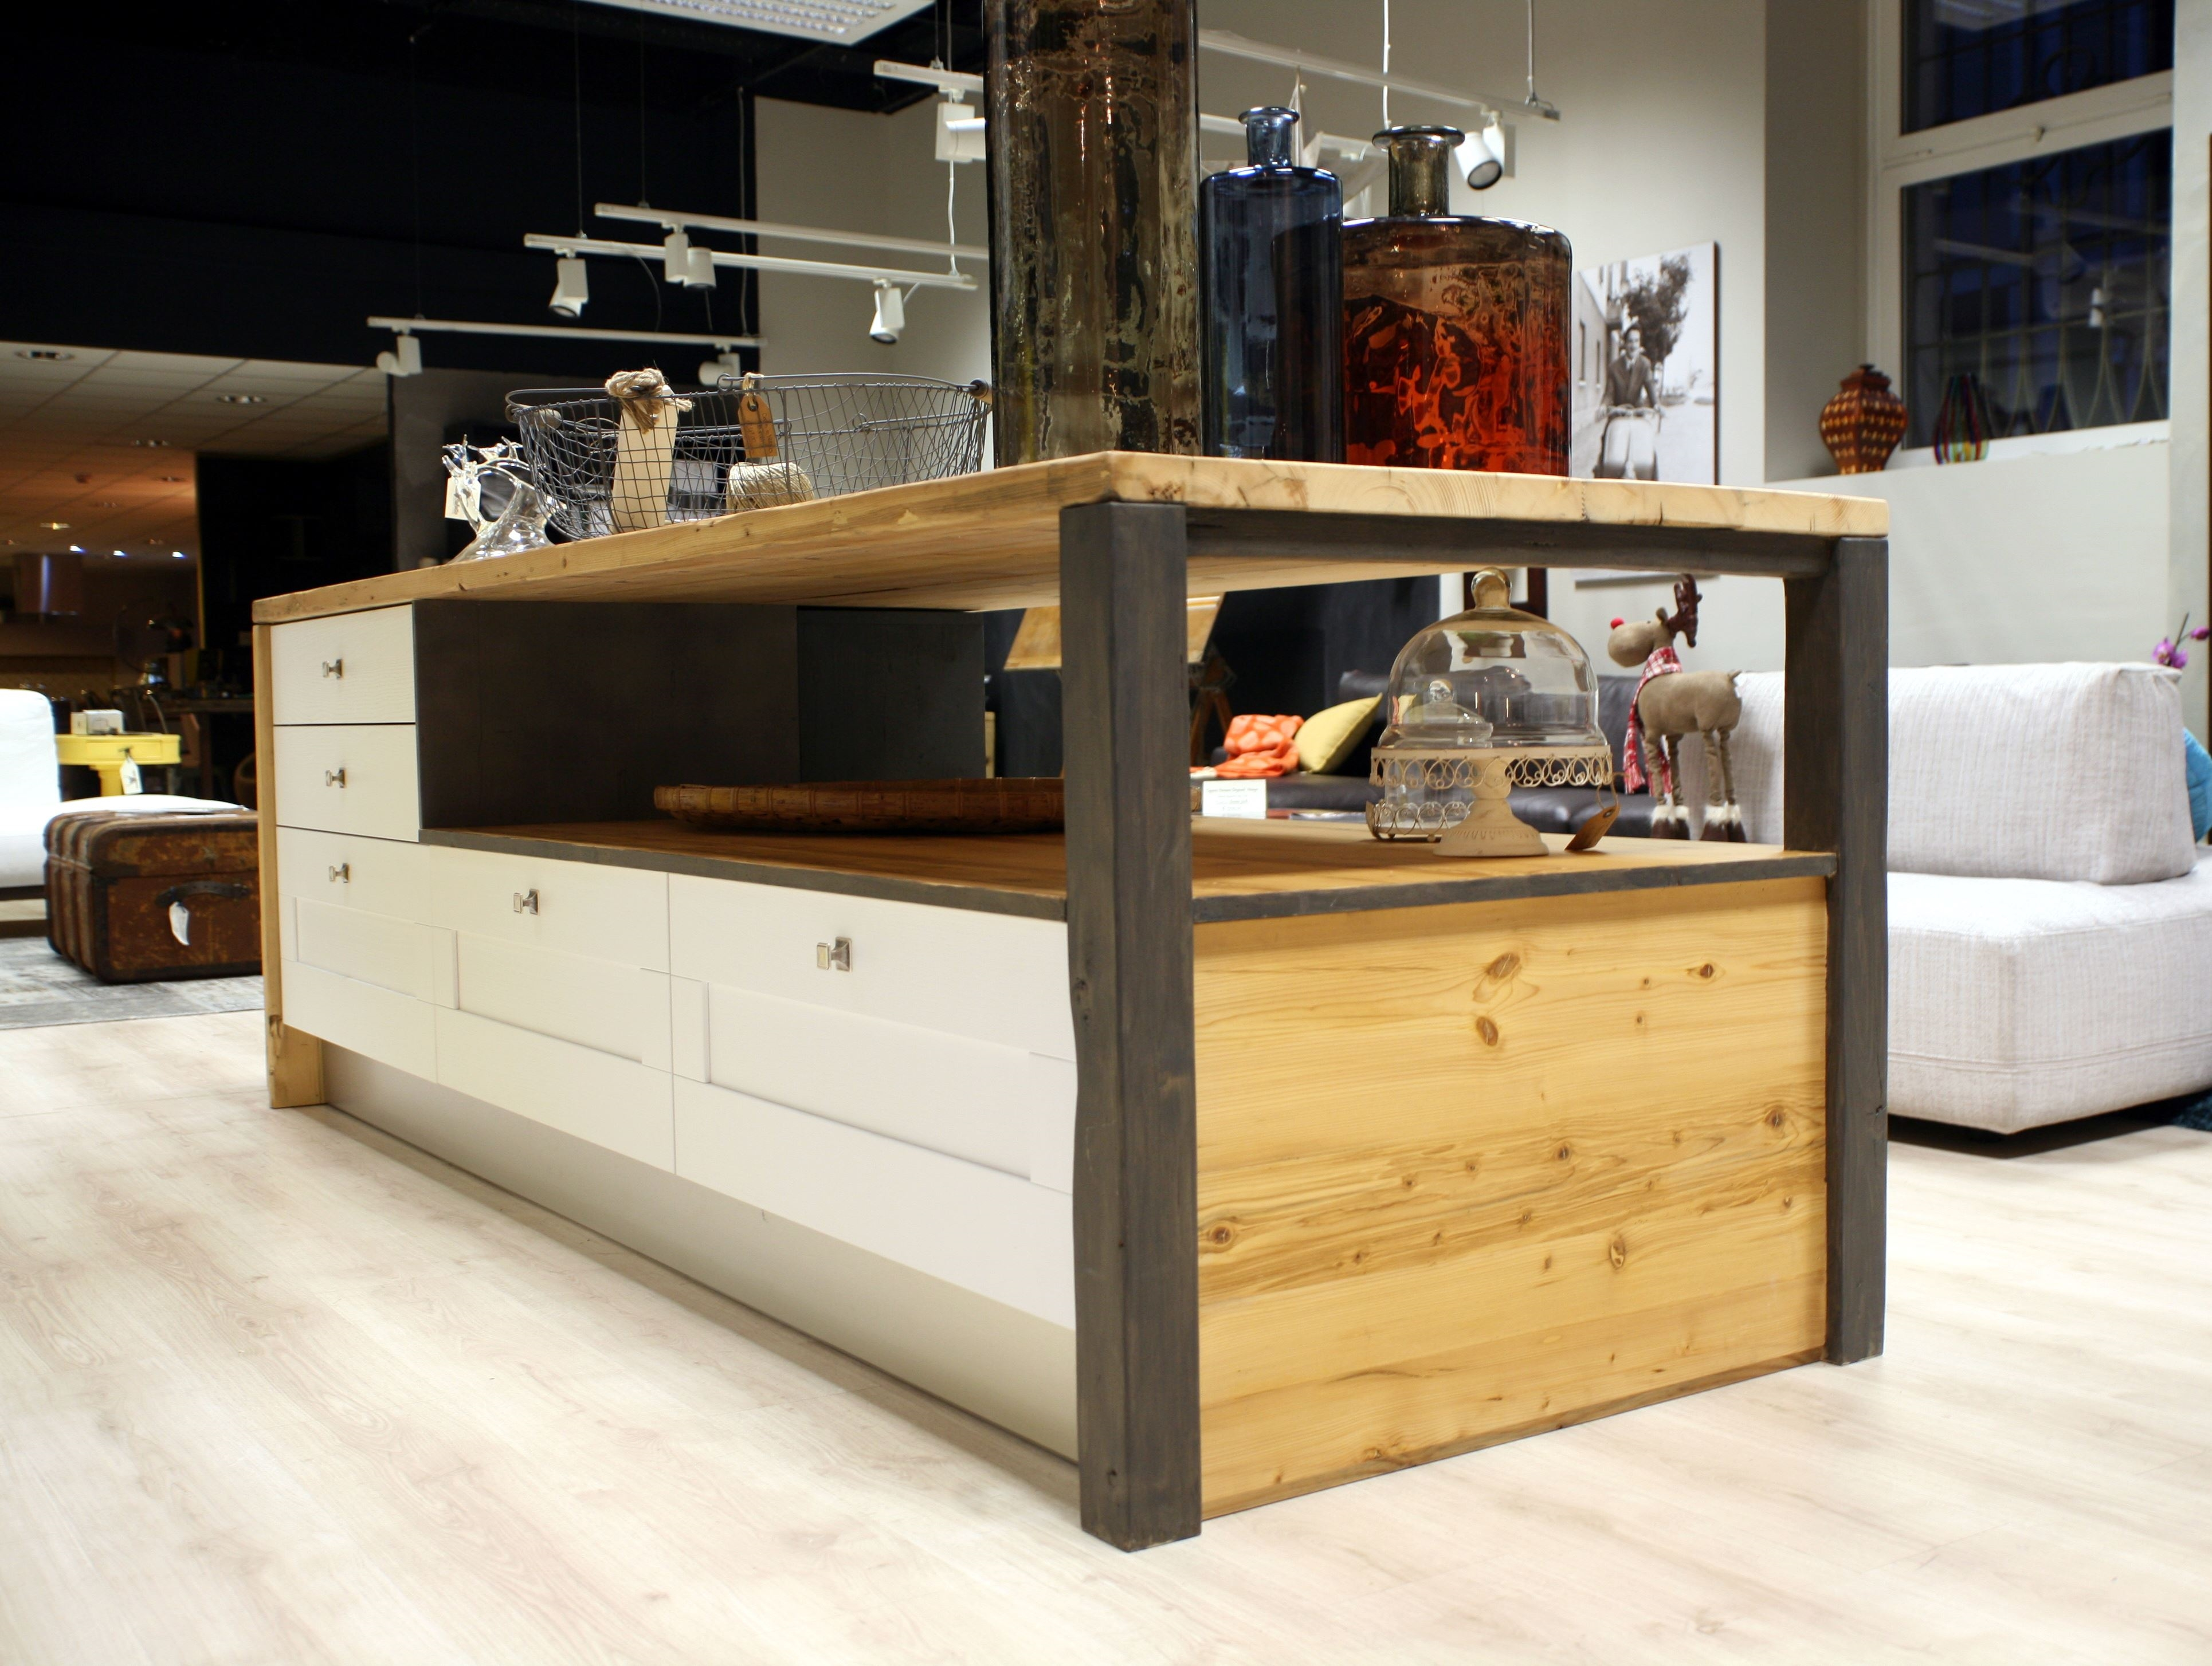 Awesome Isola Per Cucina Offerte Gallery - Ideas & Design 2017 ...